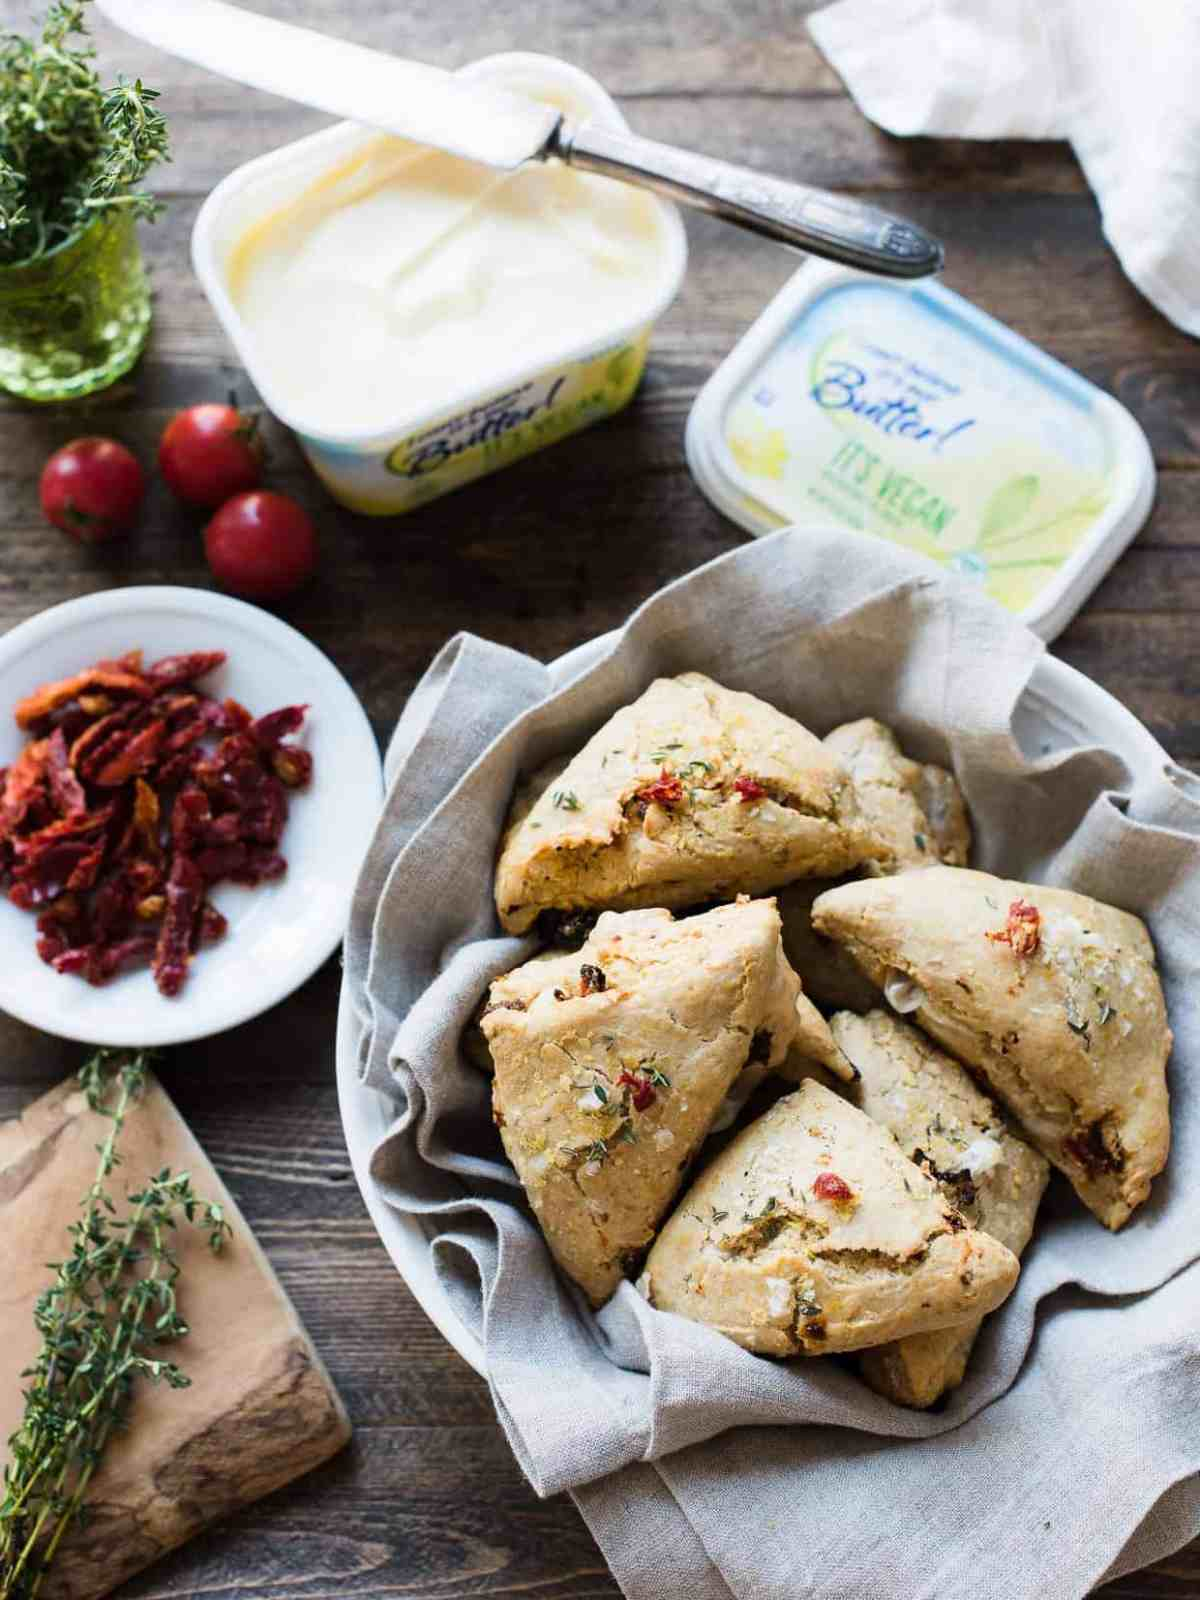 Freshly baked Sun-dried Tomato and Thyme Scones surrounded by sun-dried tomatoes, thyme, and other ingredients.